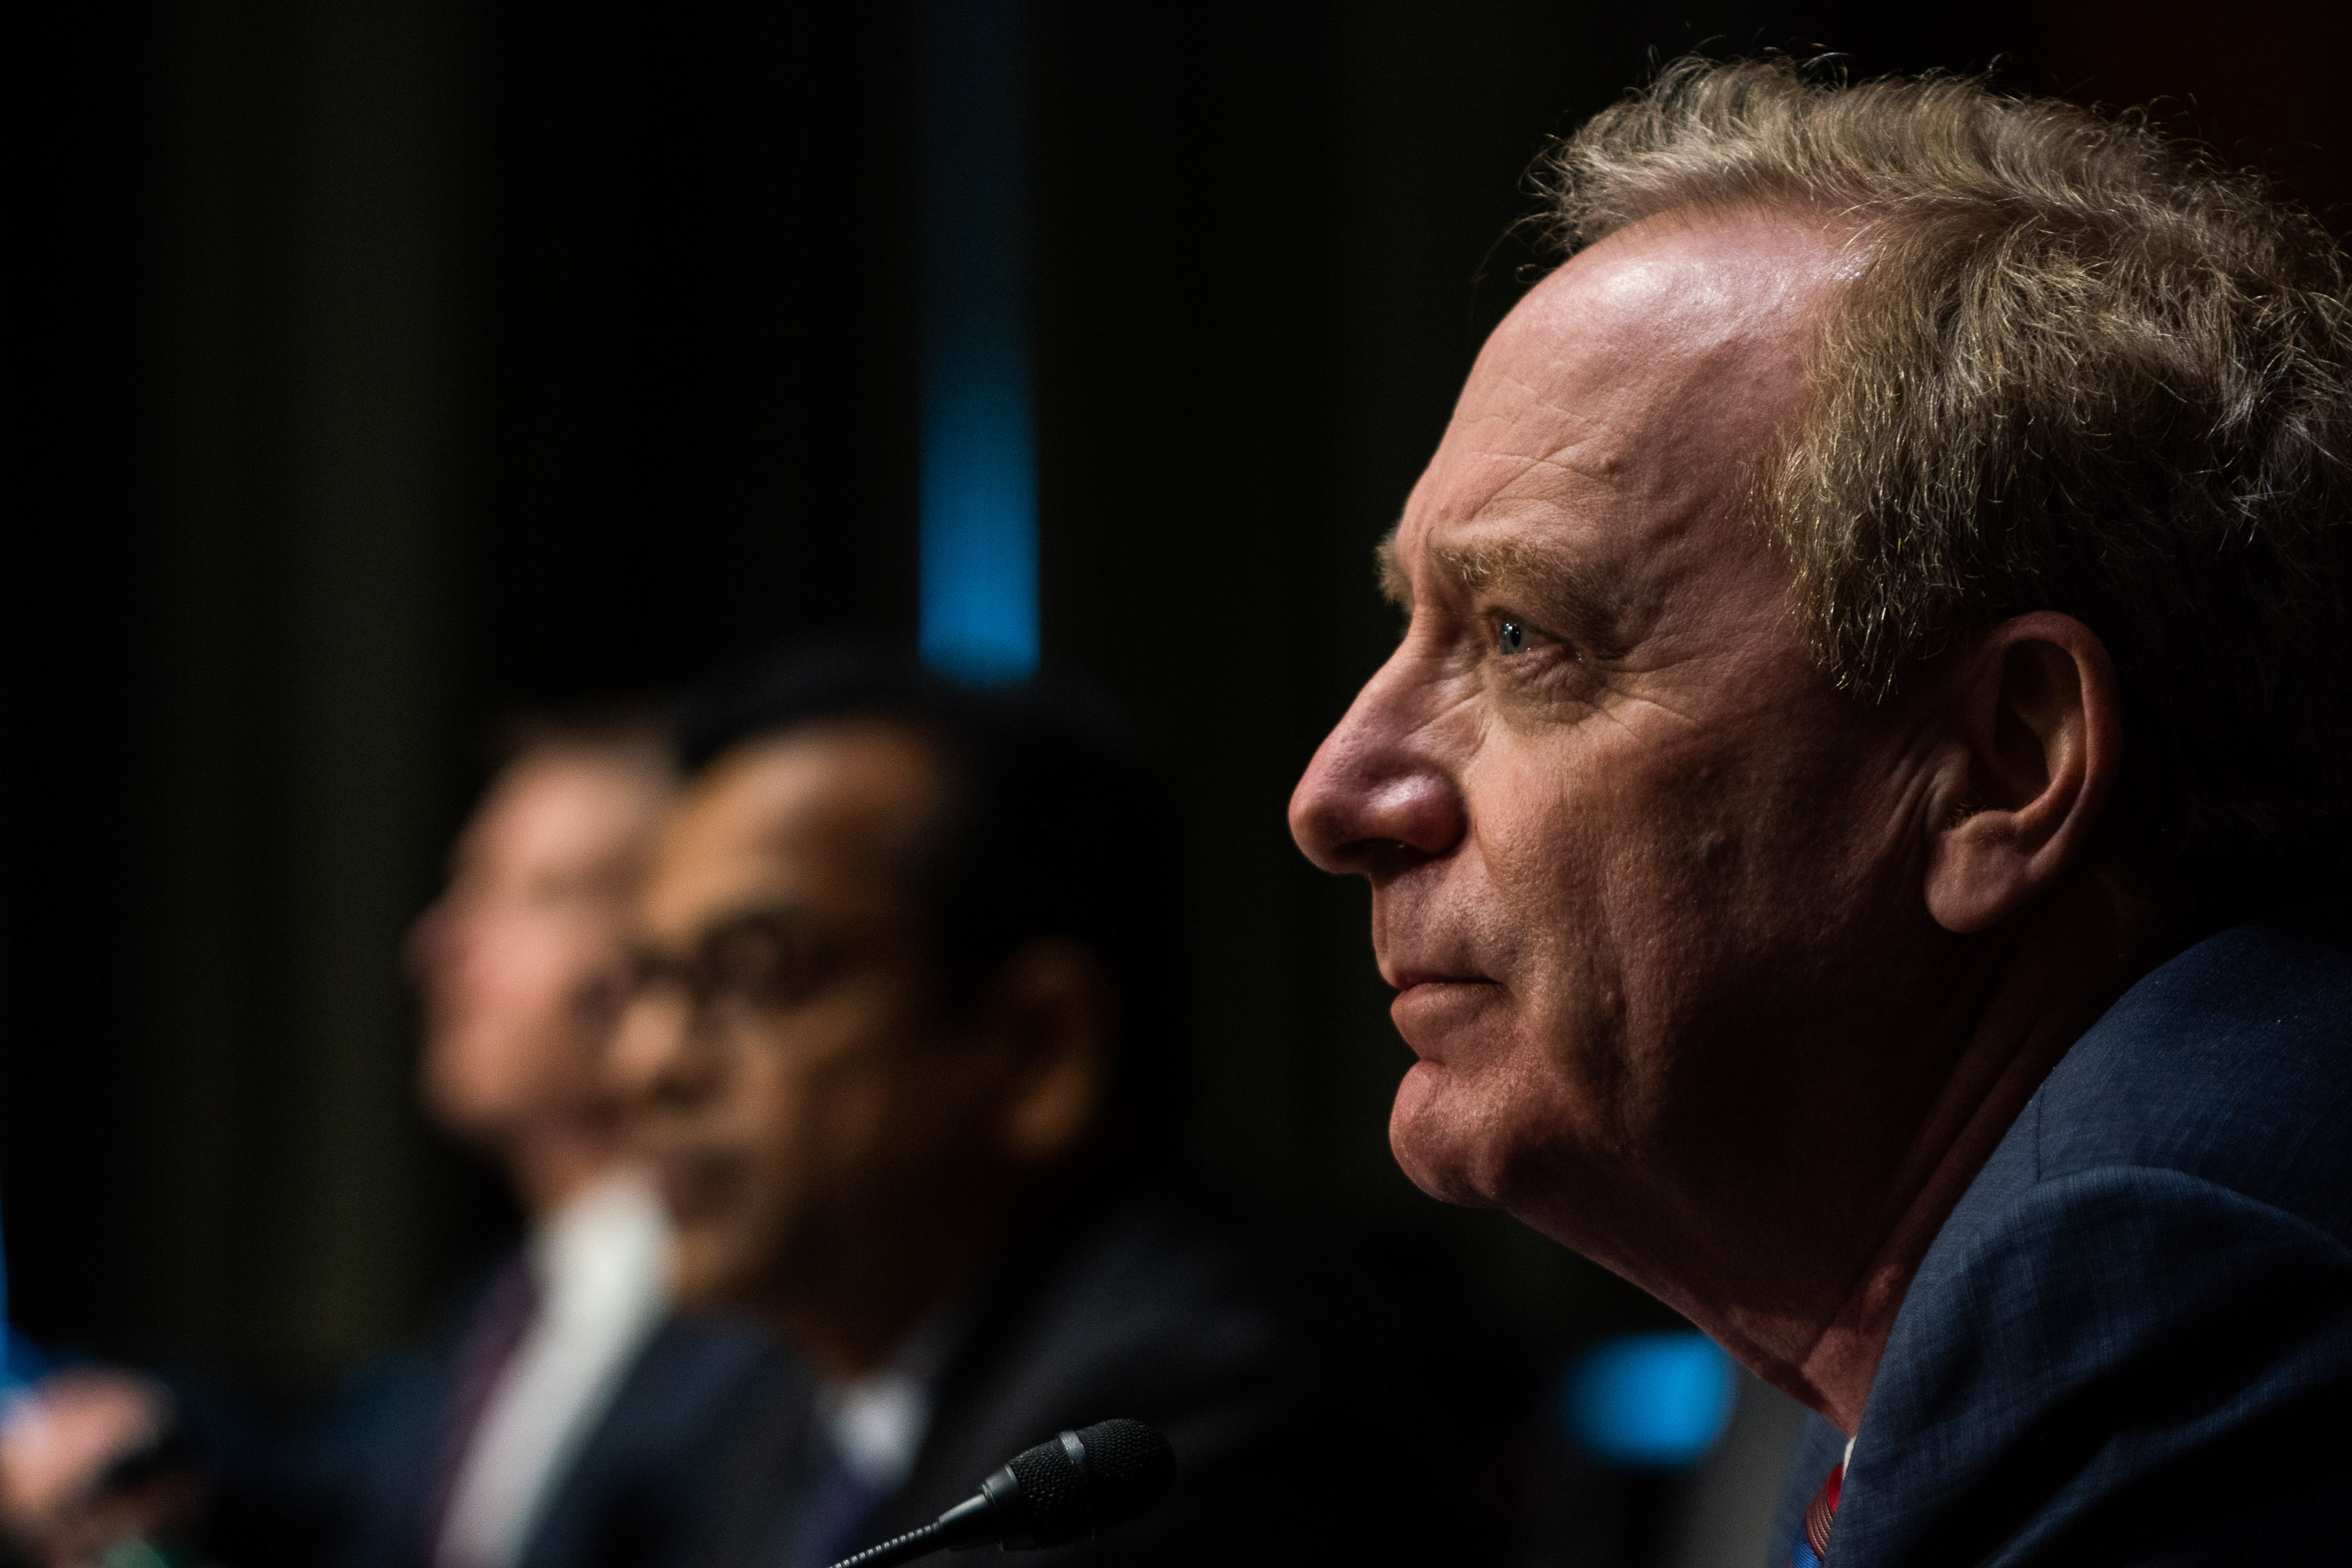 Microsoft president Brad Smith testifies to Congress